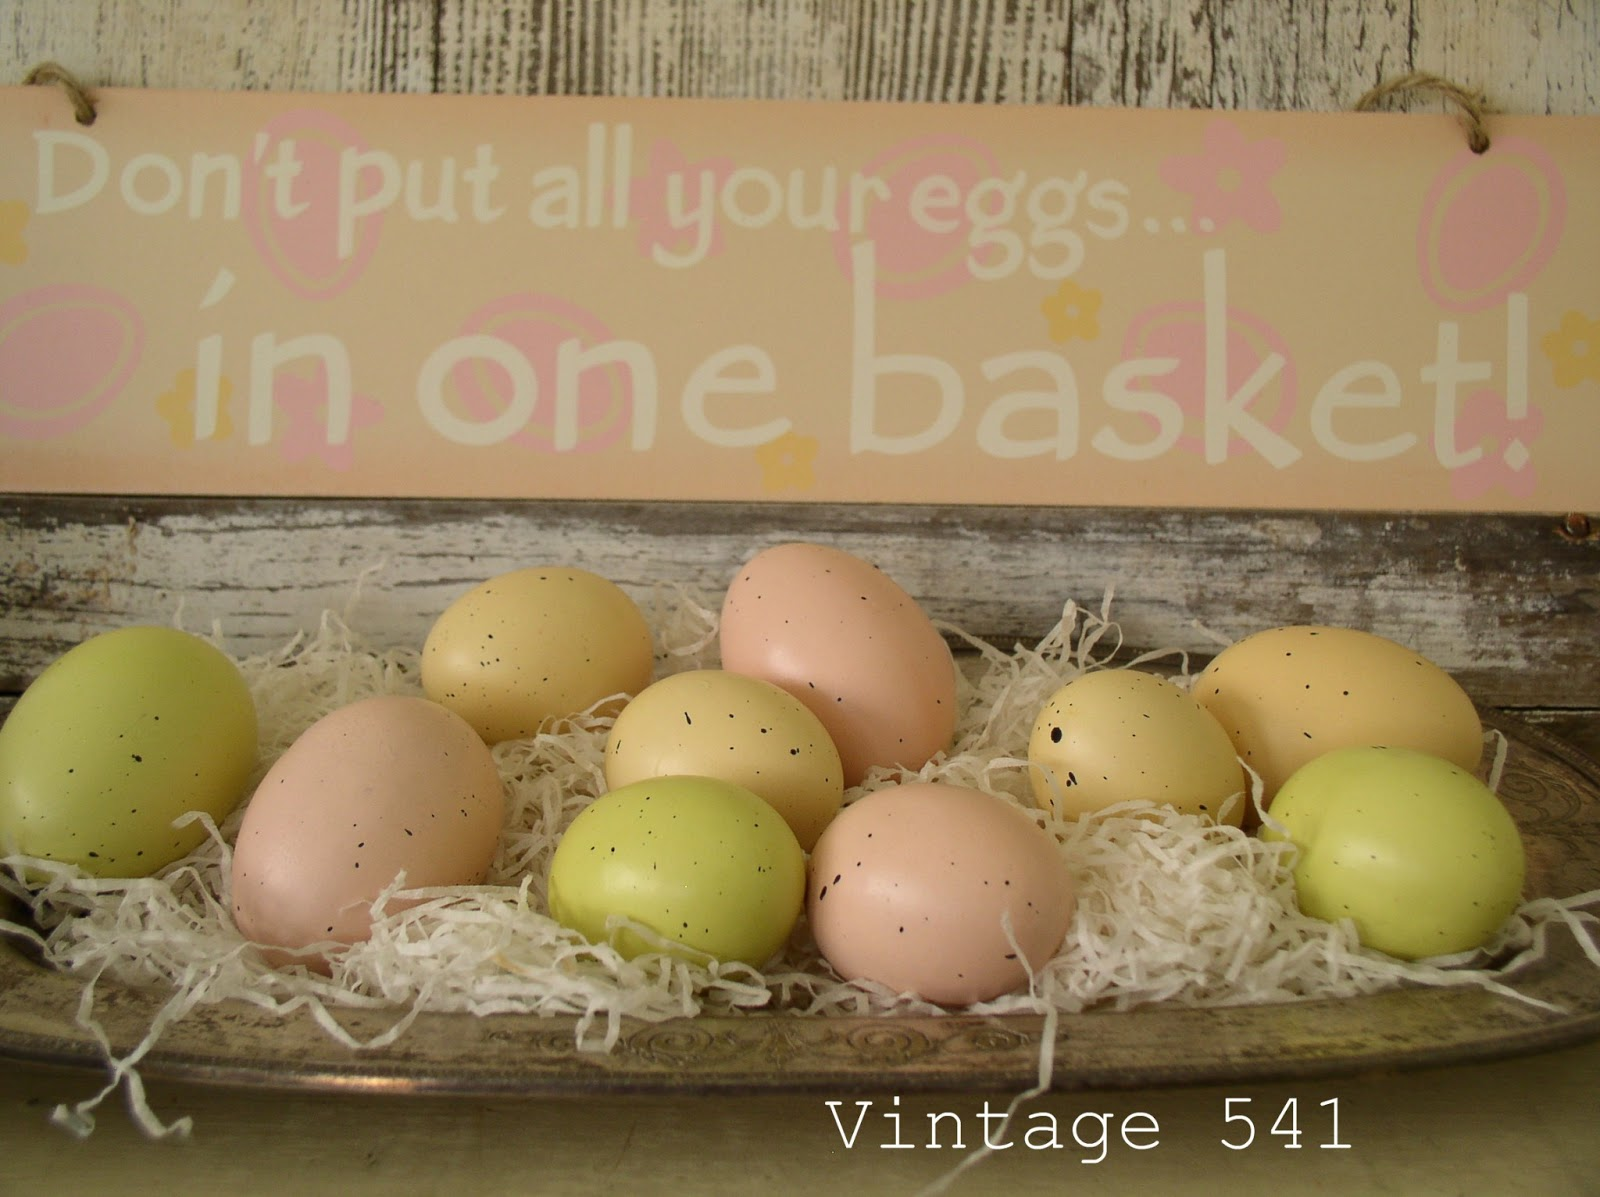 All your eggs in one basket could break your business